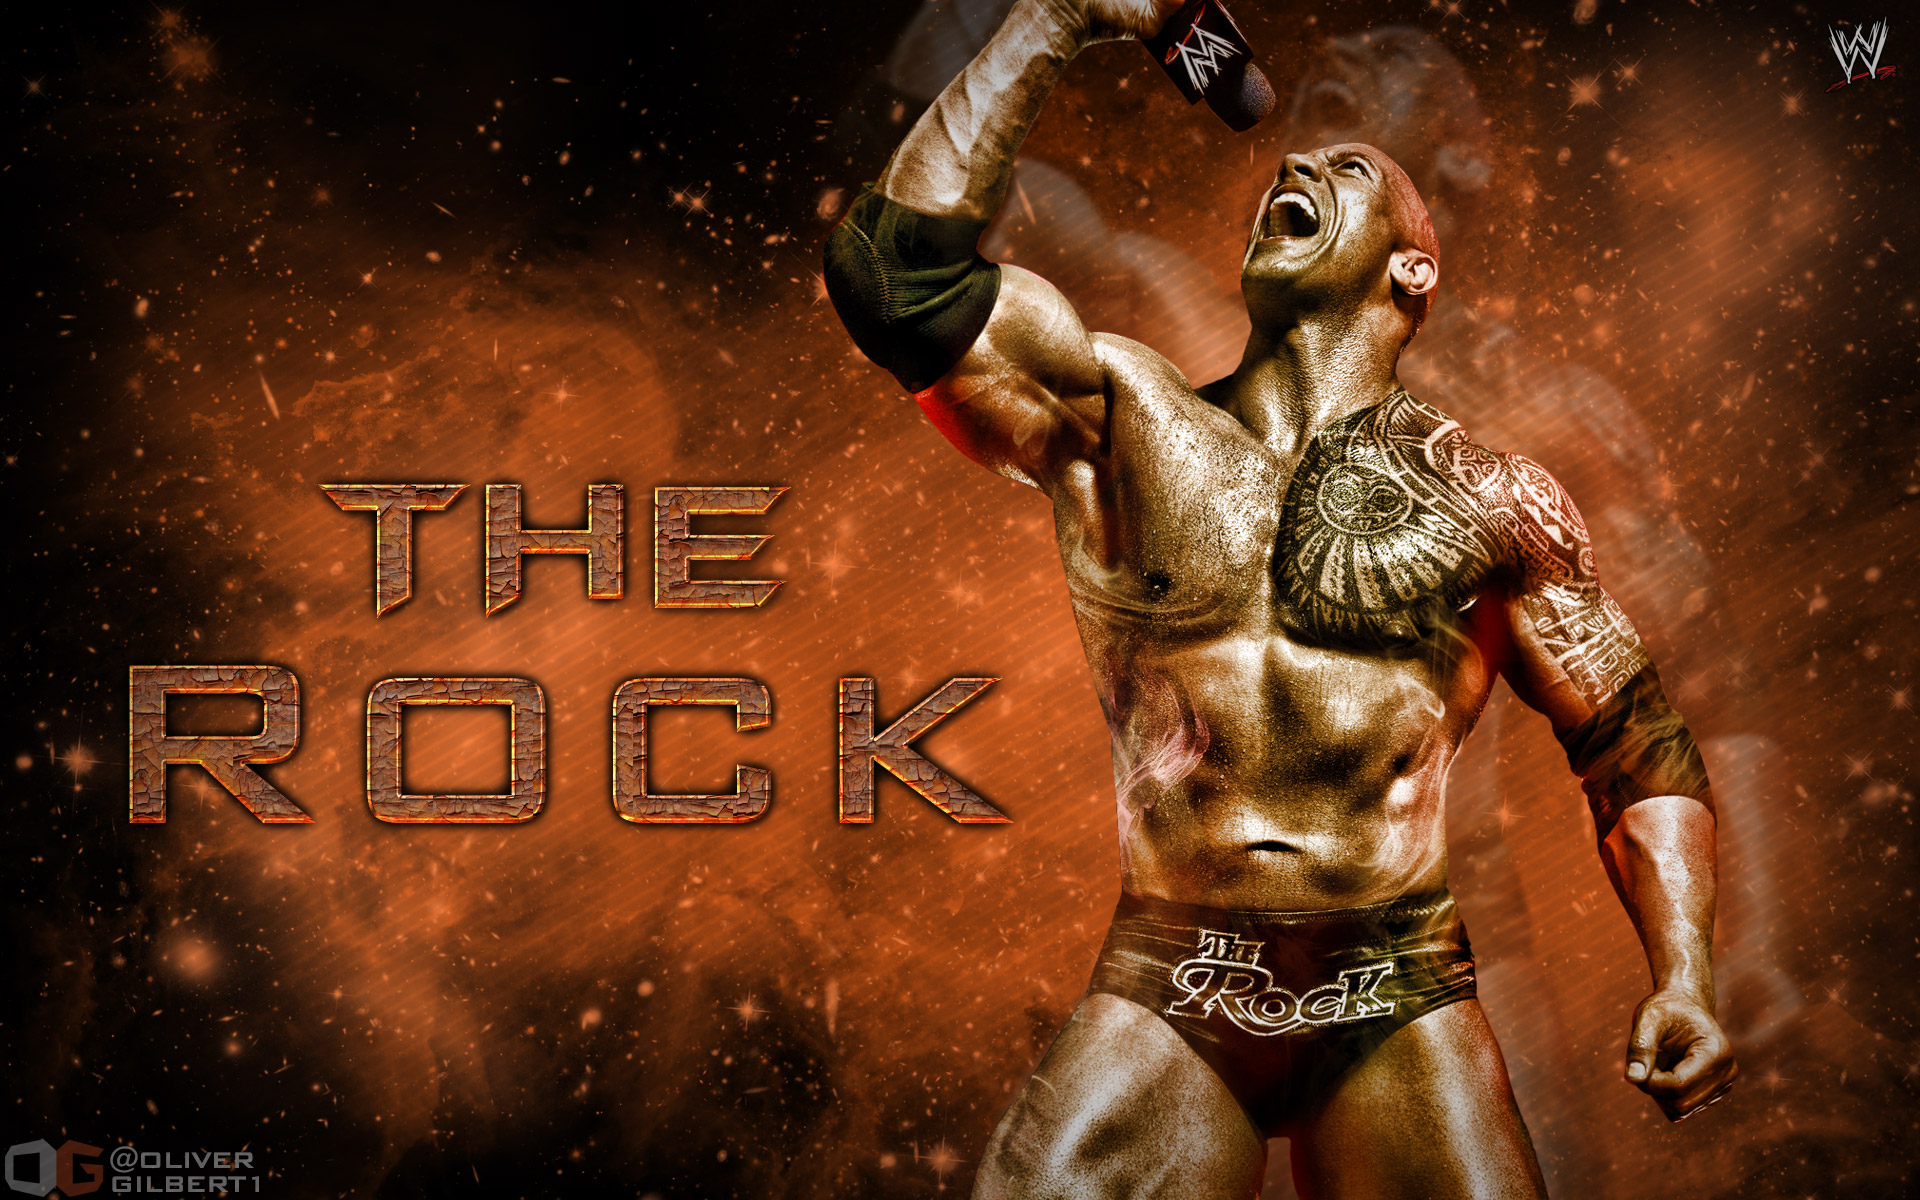 wwe the rock full hd wallpaper and background image | 1920x1200 | id